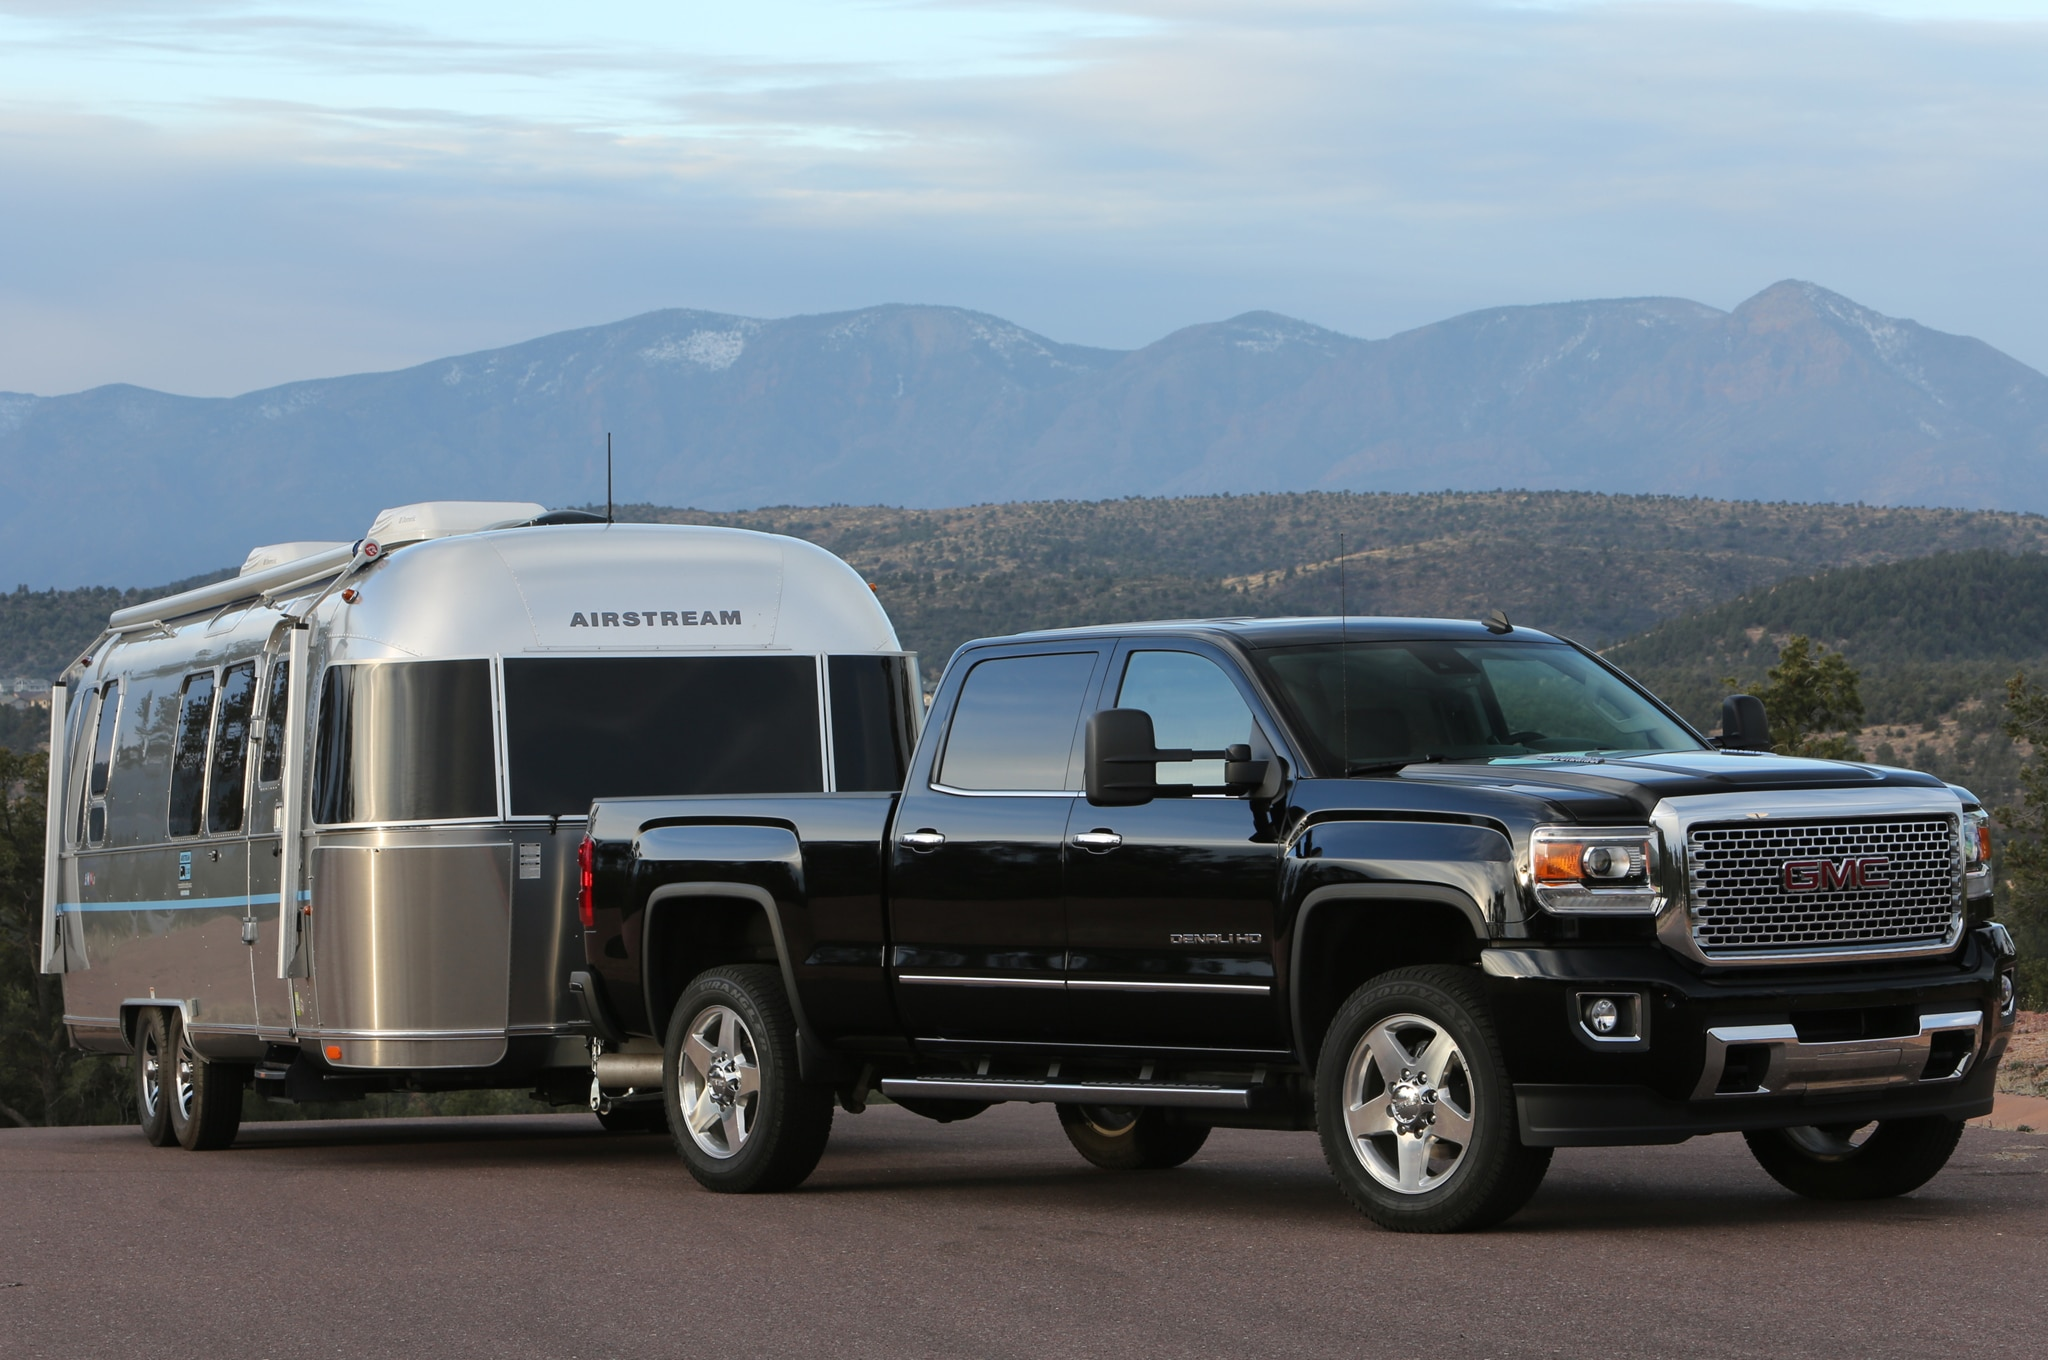 2015 GMC Sierra 2500HD Denali with airstream camper